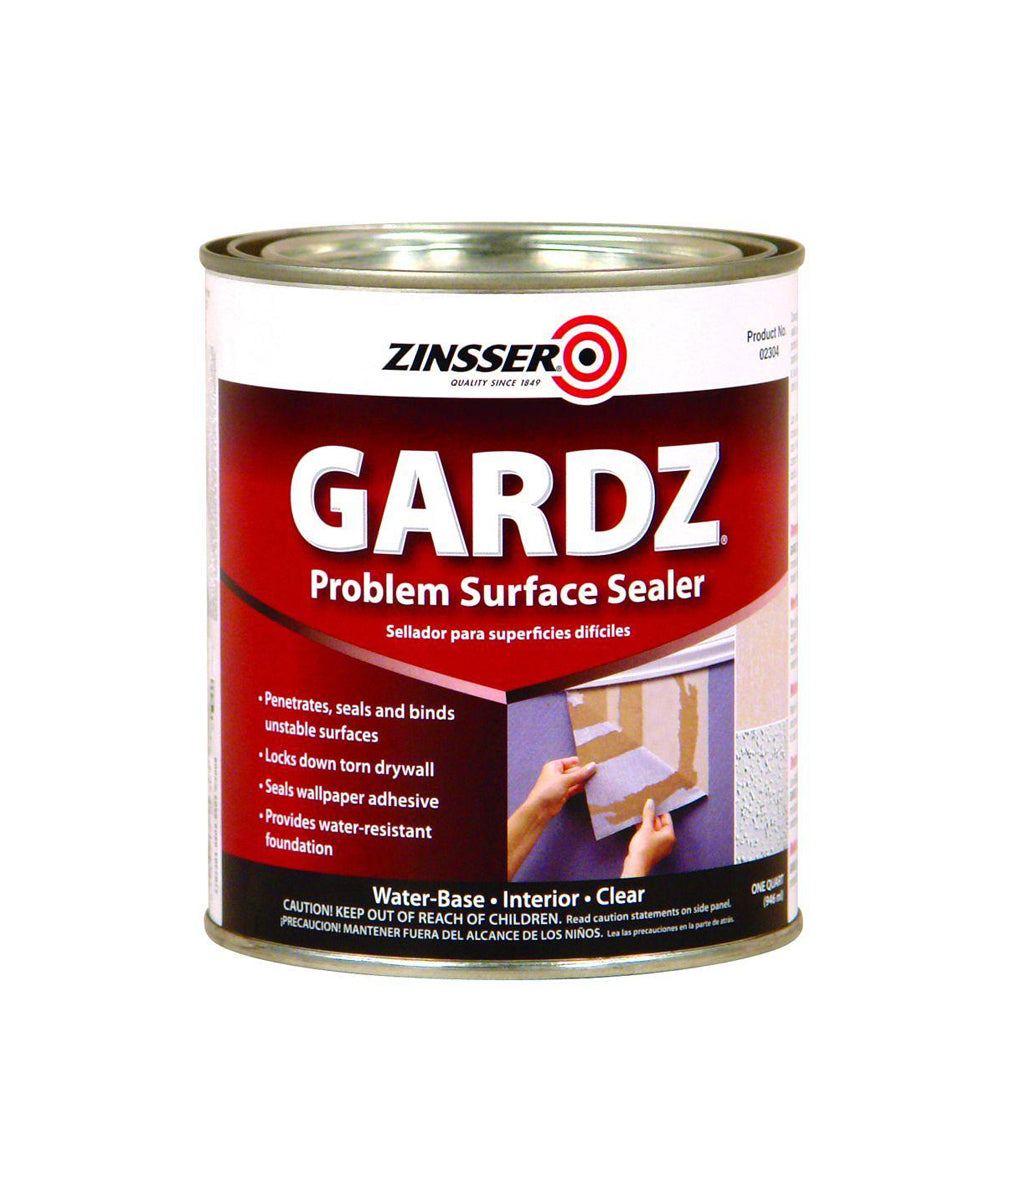 Zinsser Gardz sealer, available at Wallauer's in NY.